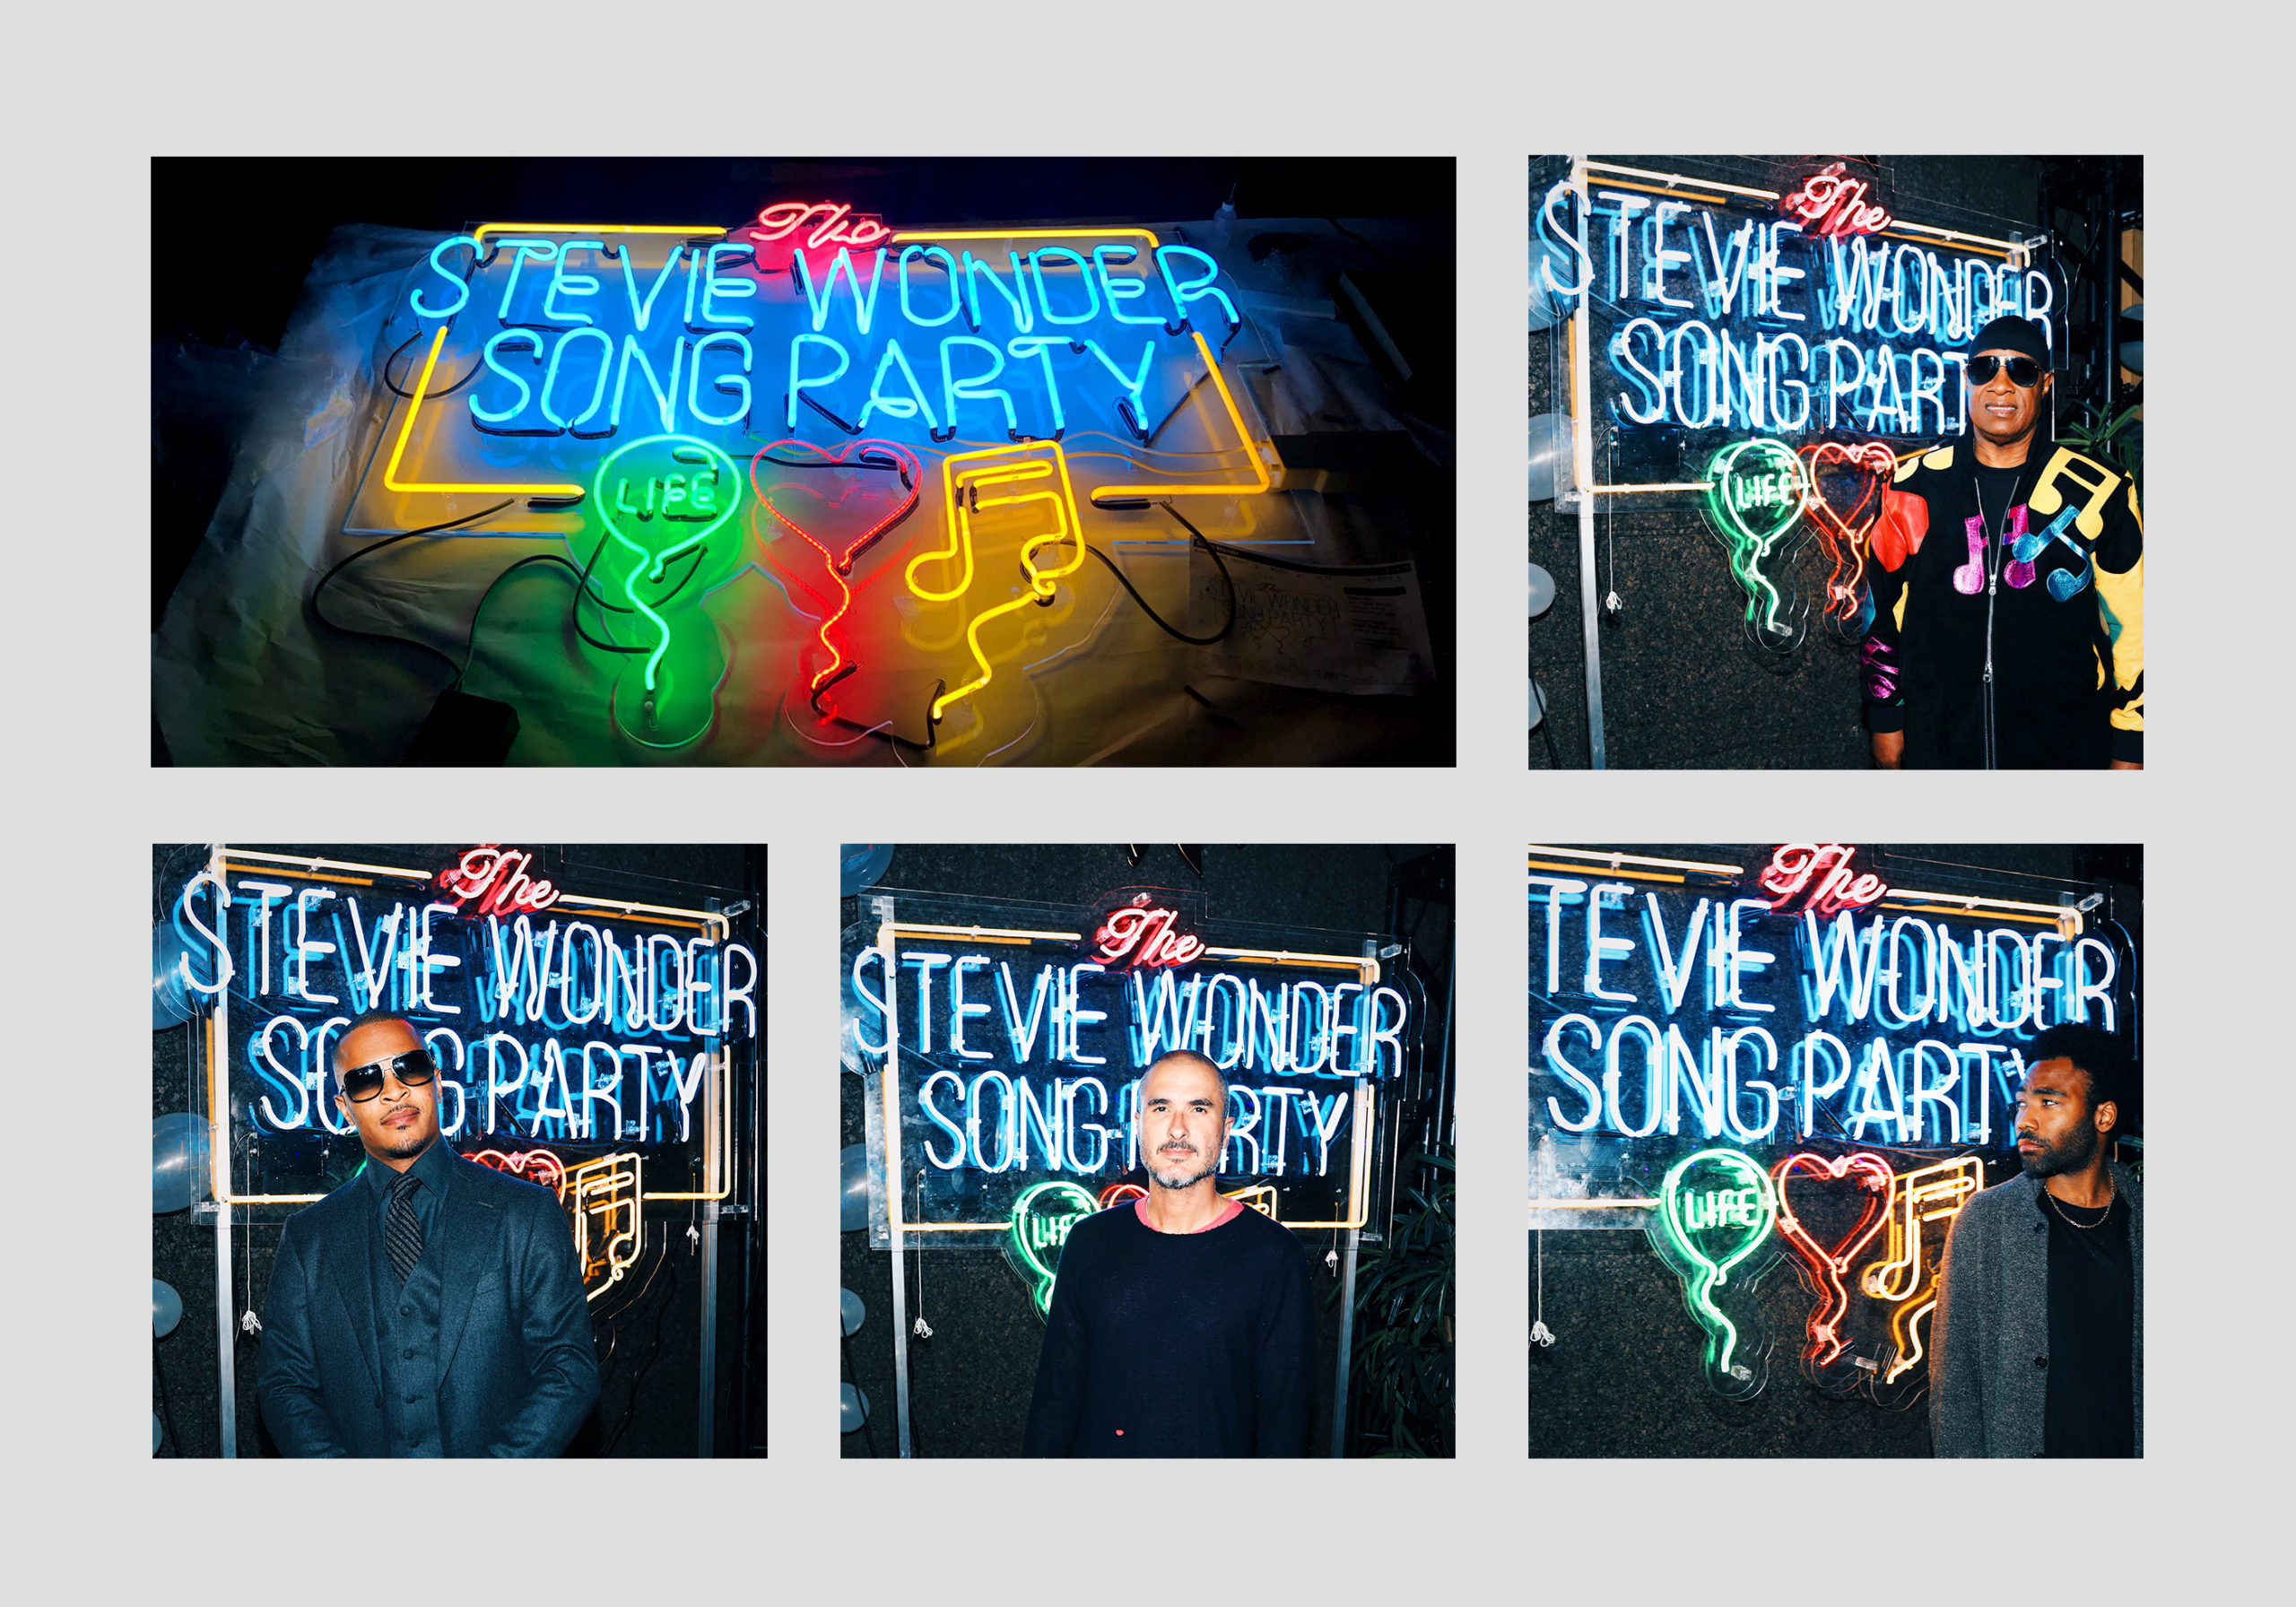 The Stevie Wonder Song Party